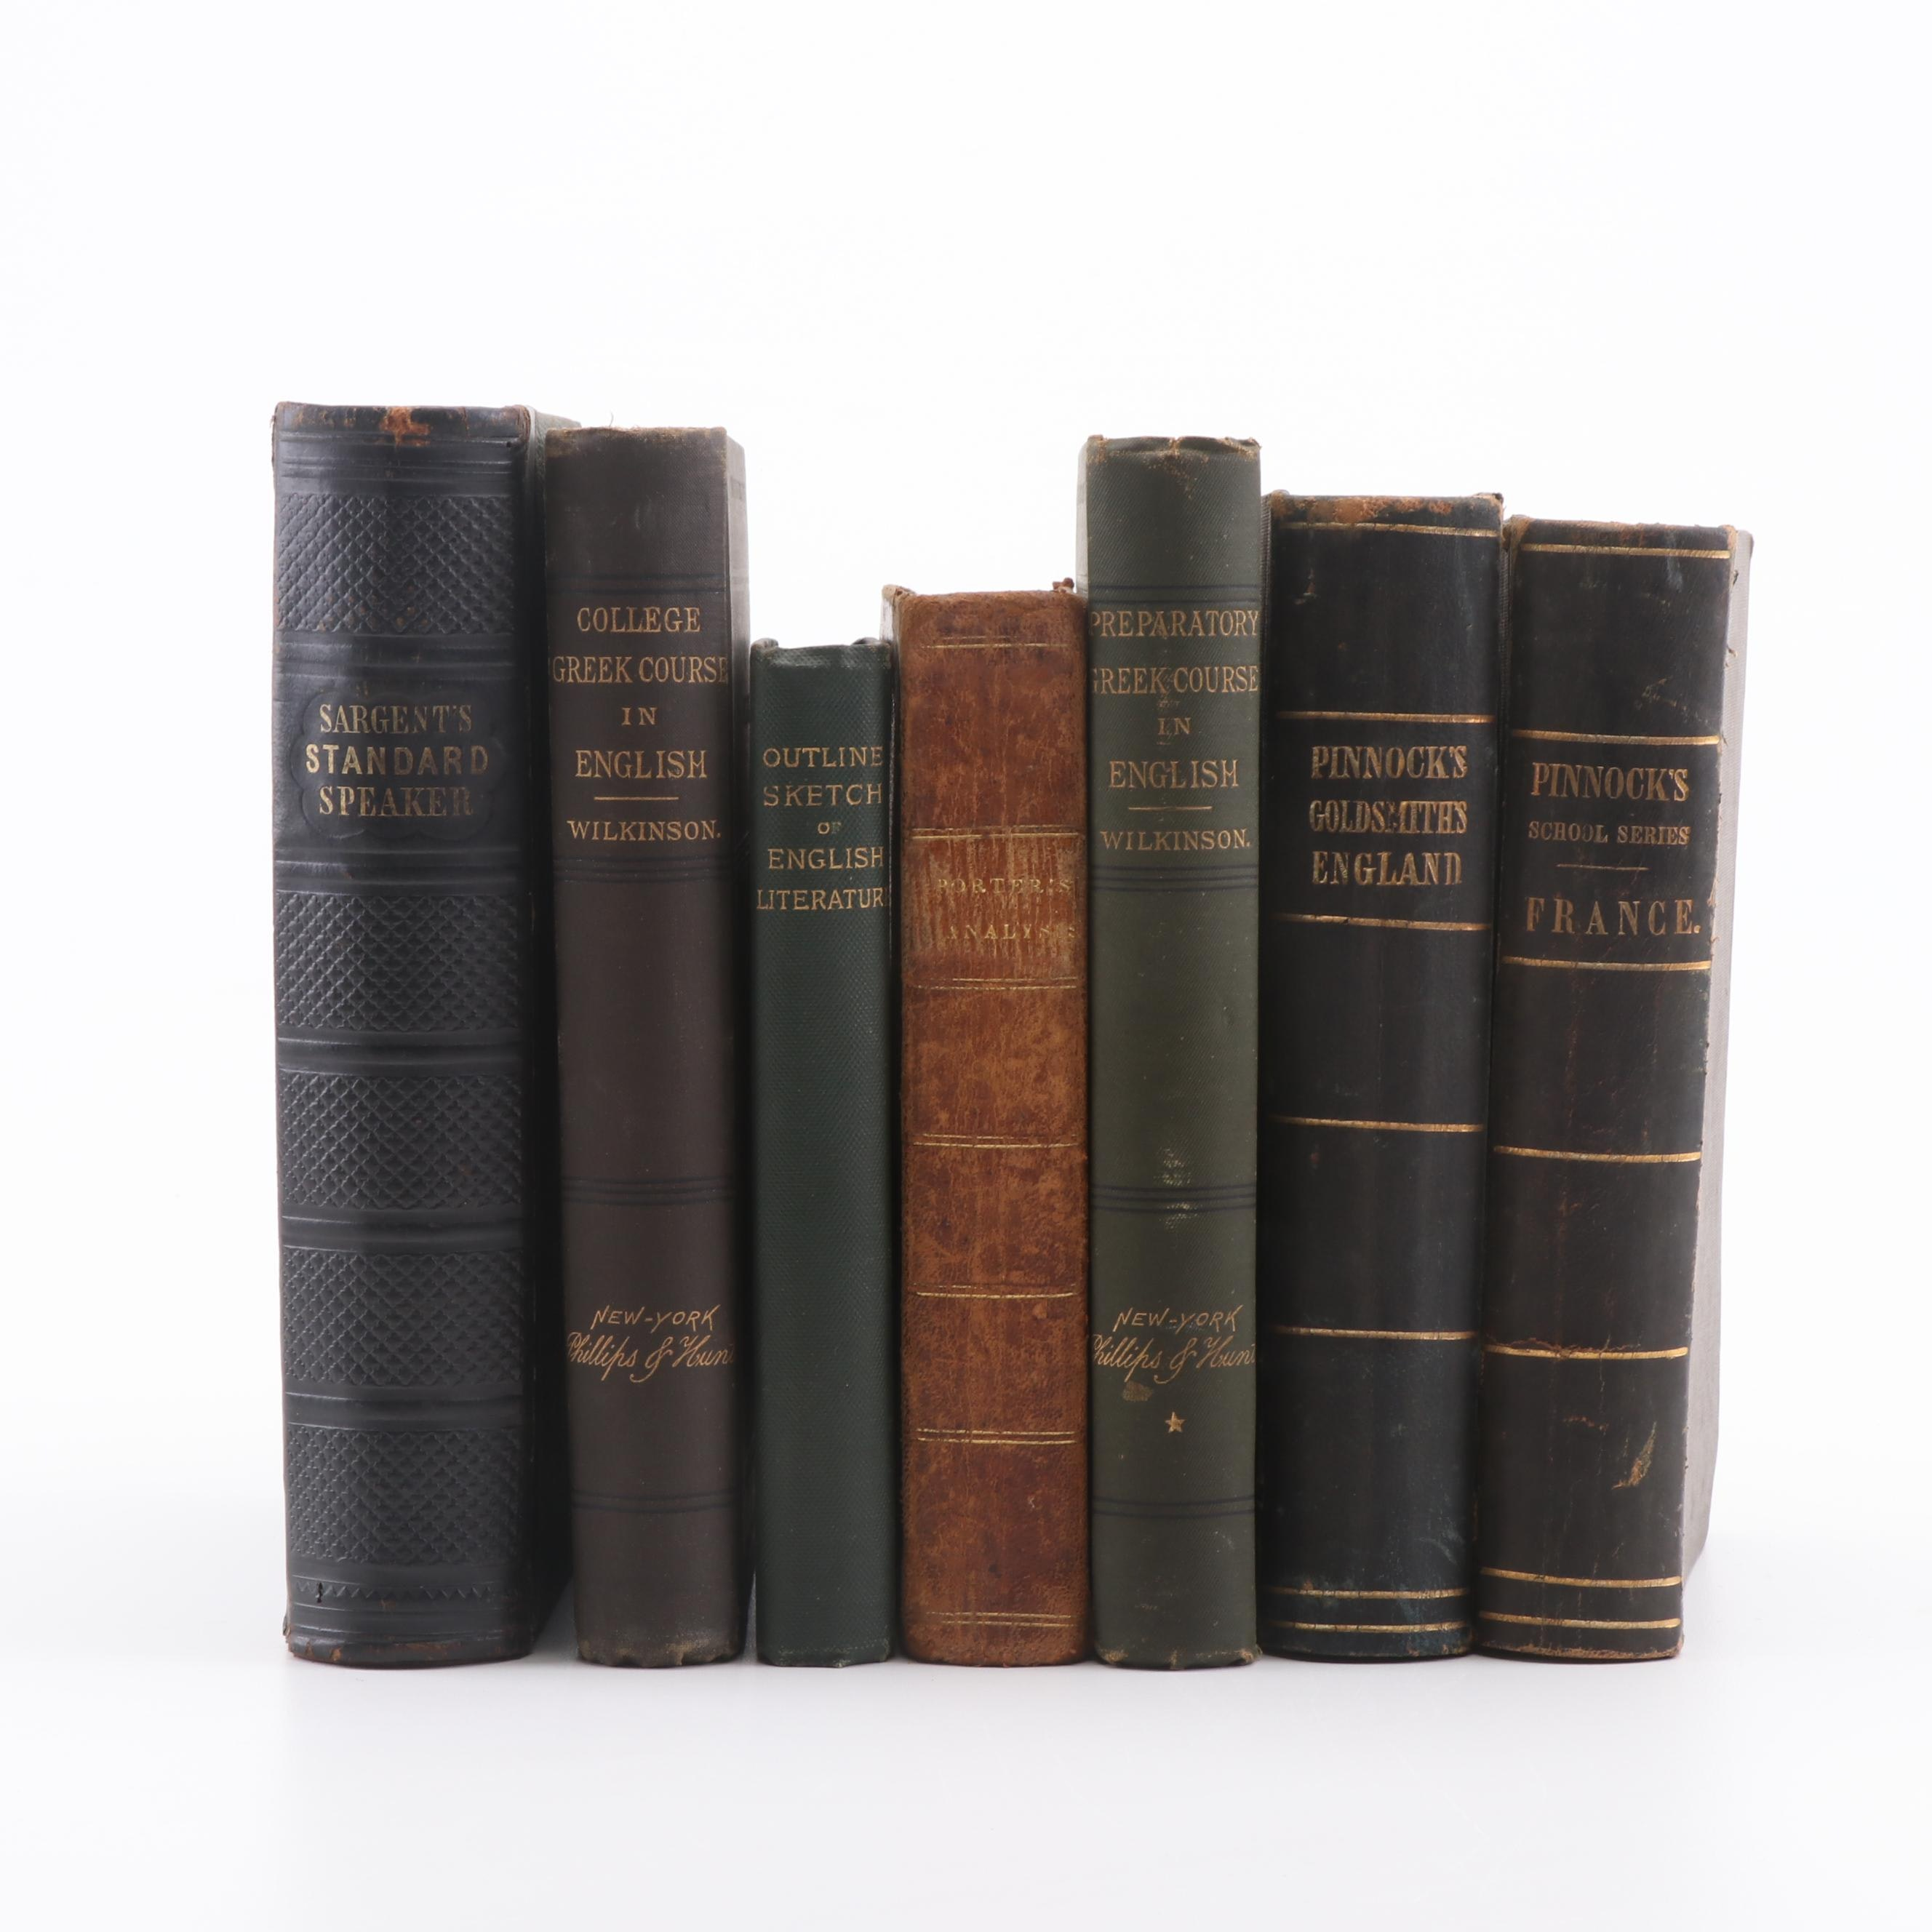 19th Century Books on Language, Speech, and History